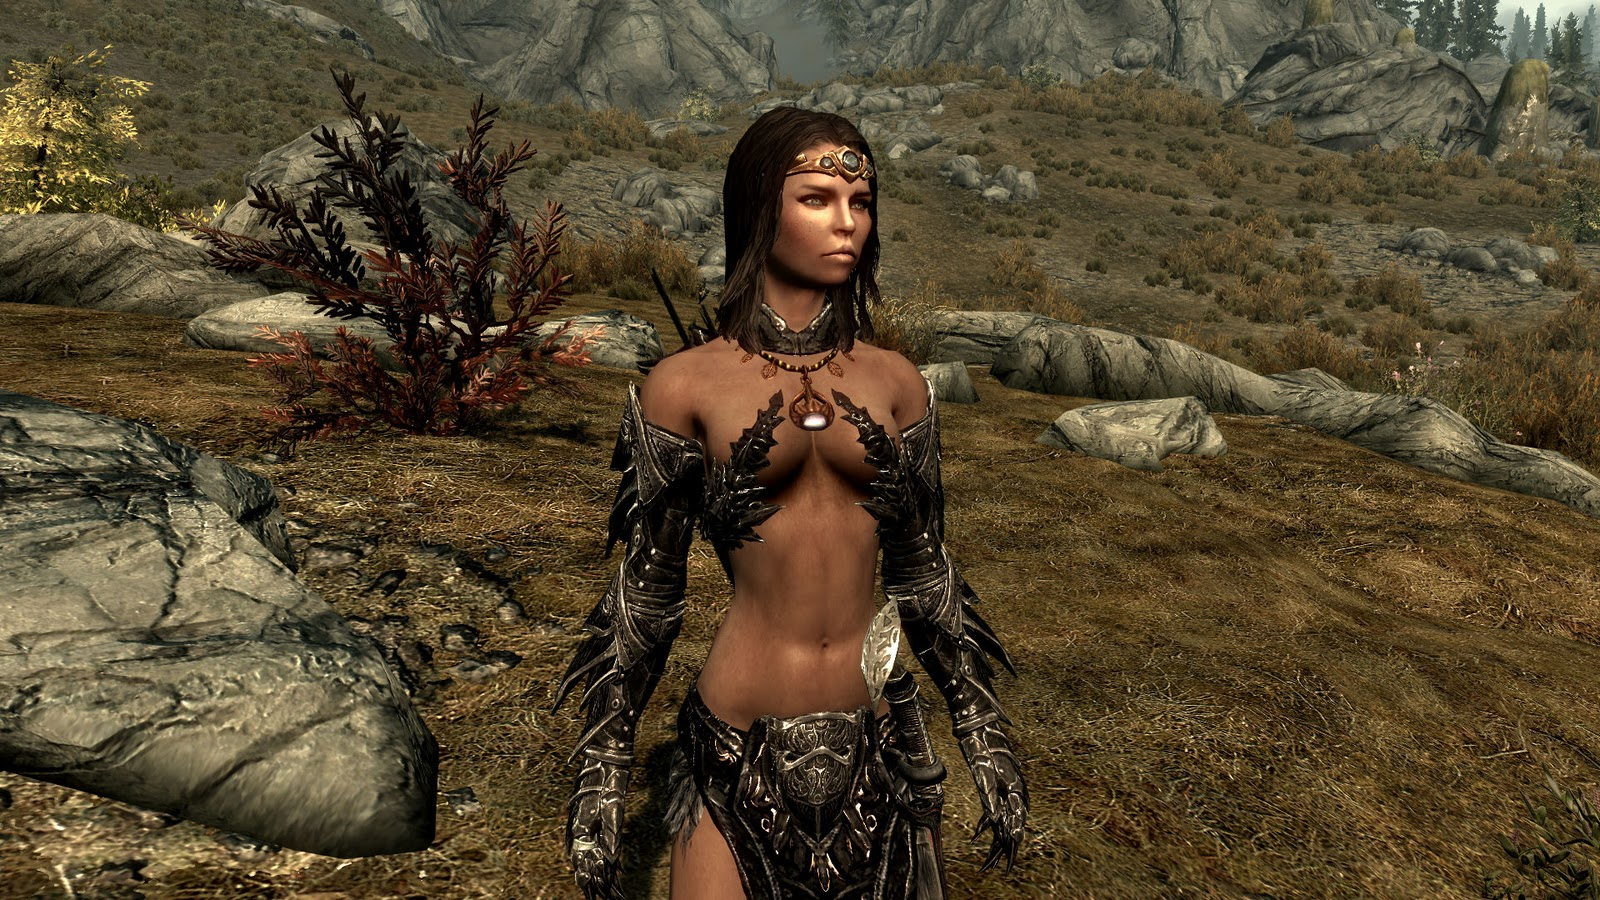 Daedric female armor replacer by MaikCG